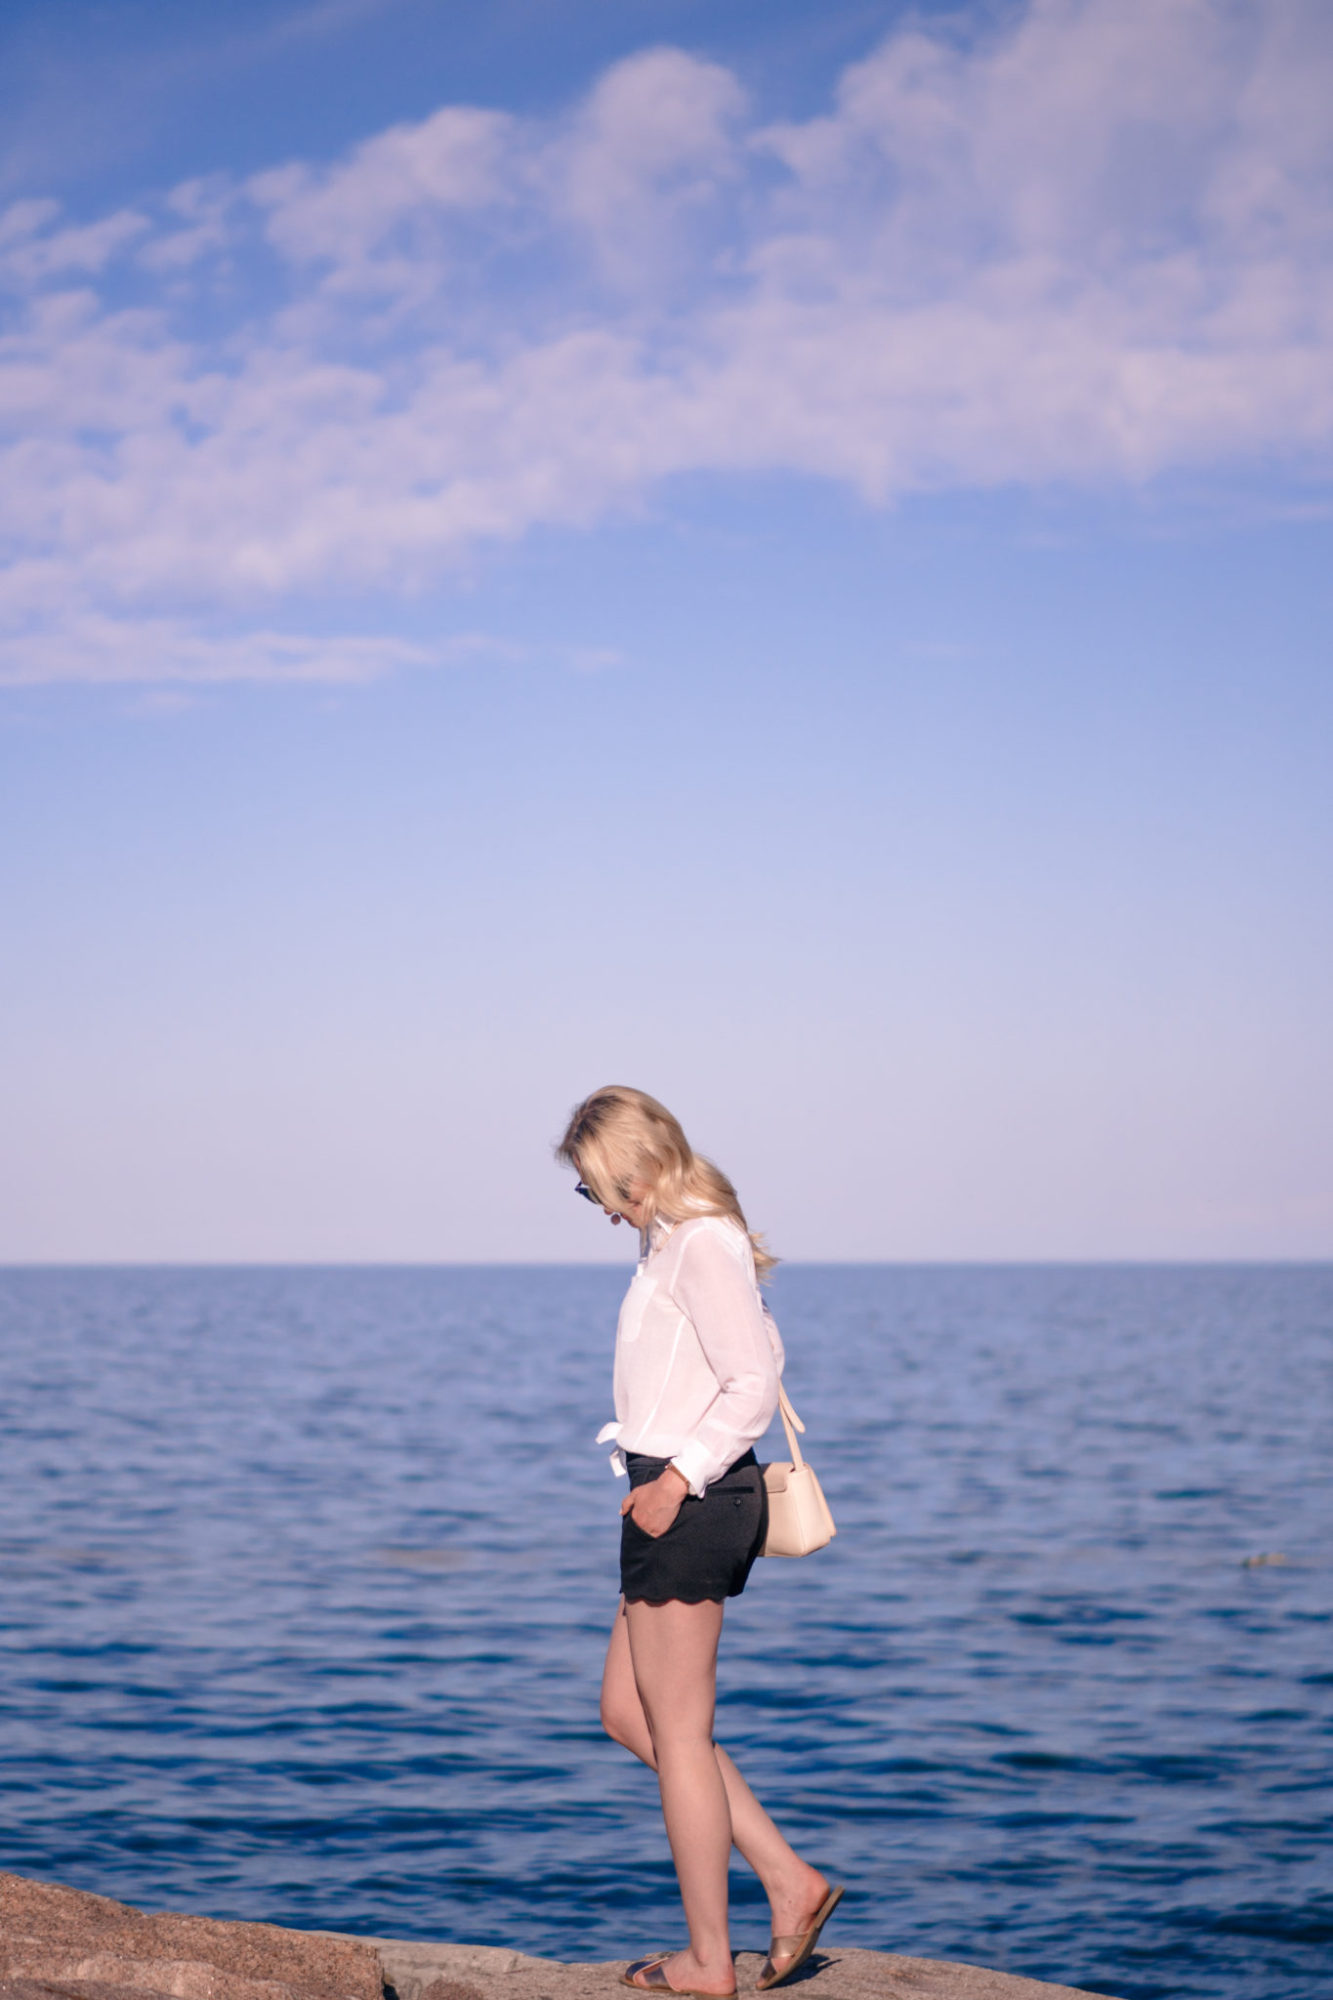 Classic Waterfront Summer Style - Black Shorts, White Blouse